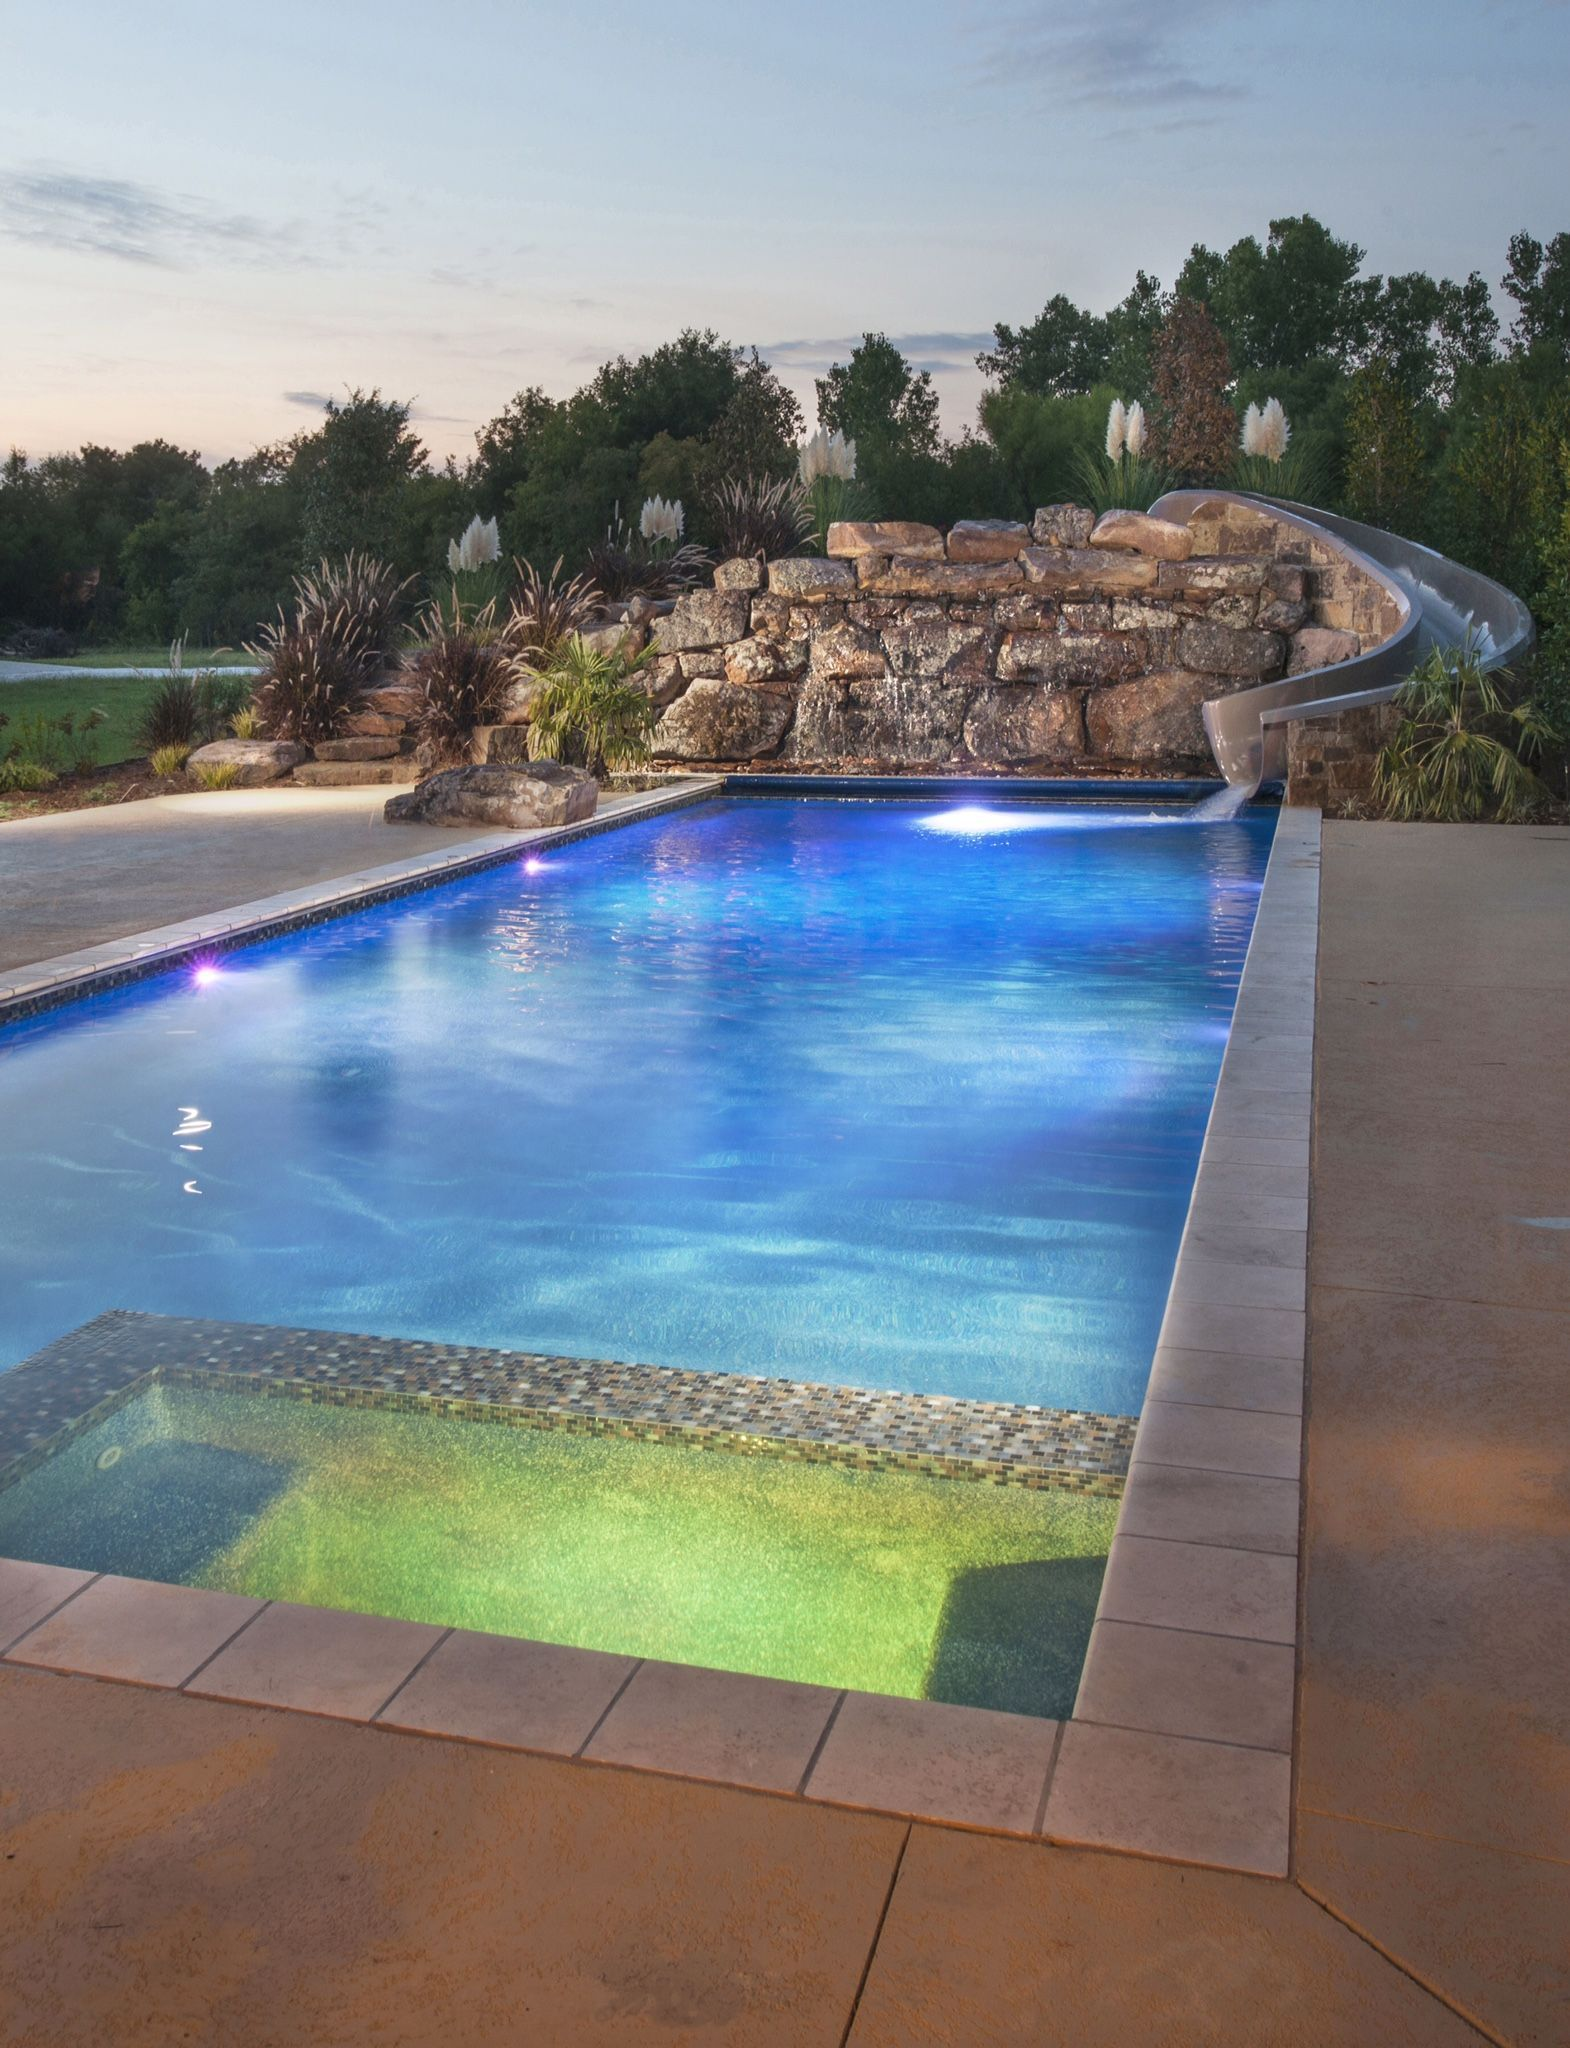 Outdoor Pool Decor Ideas 40 Amazing Outdoor Pool Designs To Refresh Your Mind Home Decor